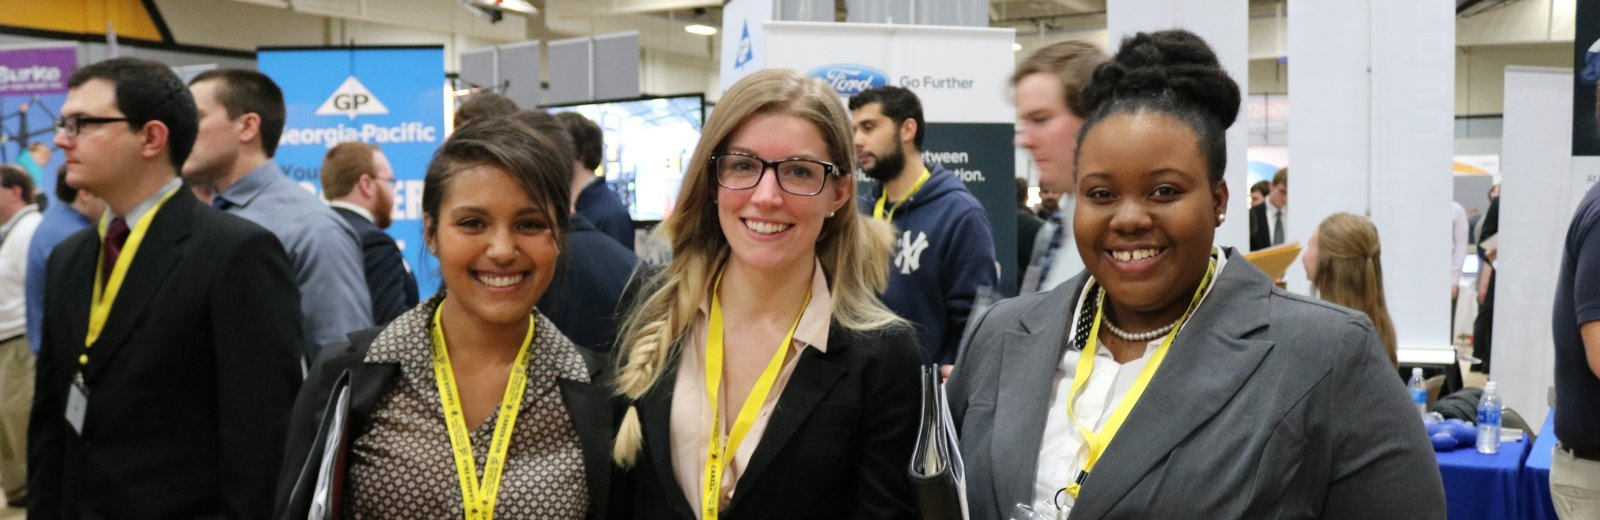 Three smiling students at the career fair